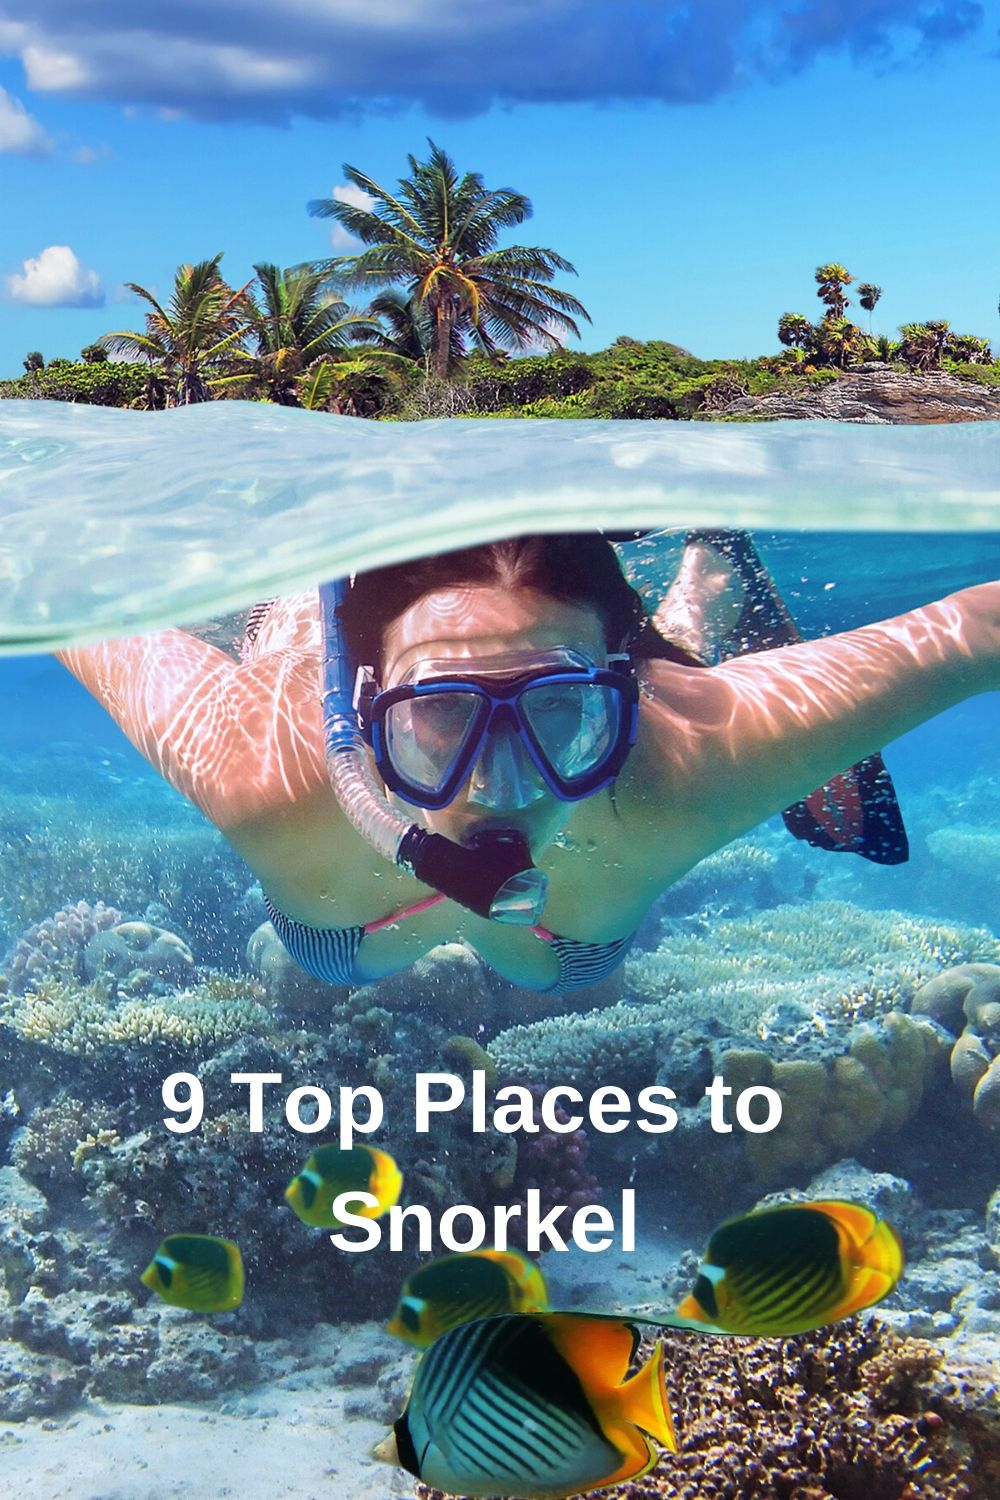 9 Best Places to Snorkel